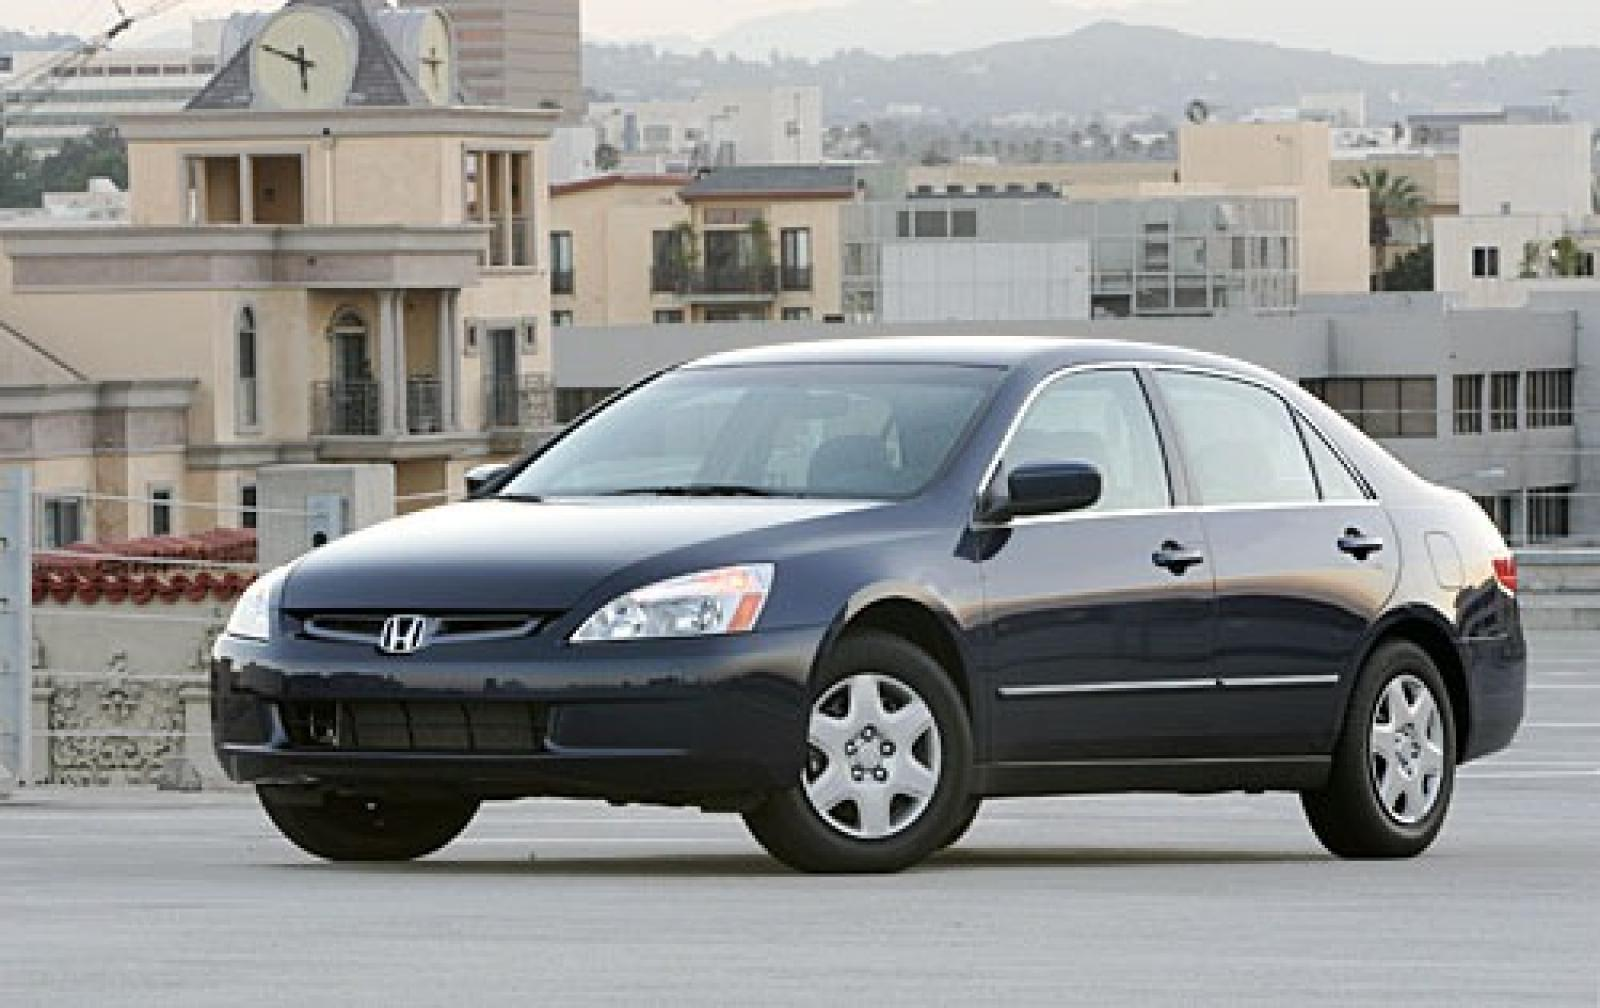 2006 honda accord information and photos zombiedrive. Black Bedroom Furniture Sets. Home Design Ideas